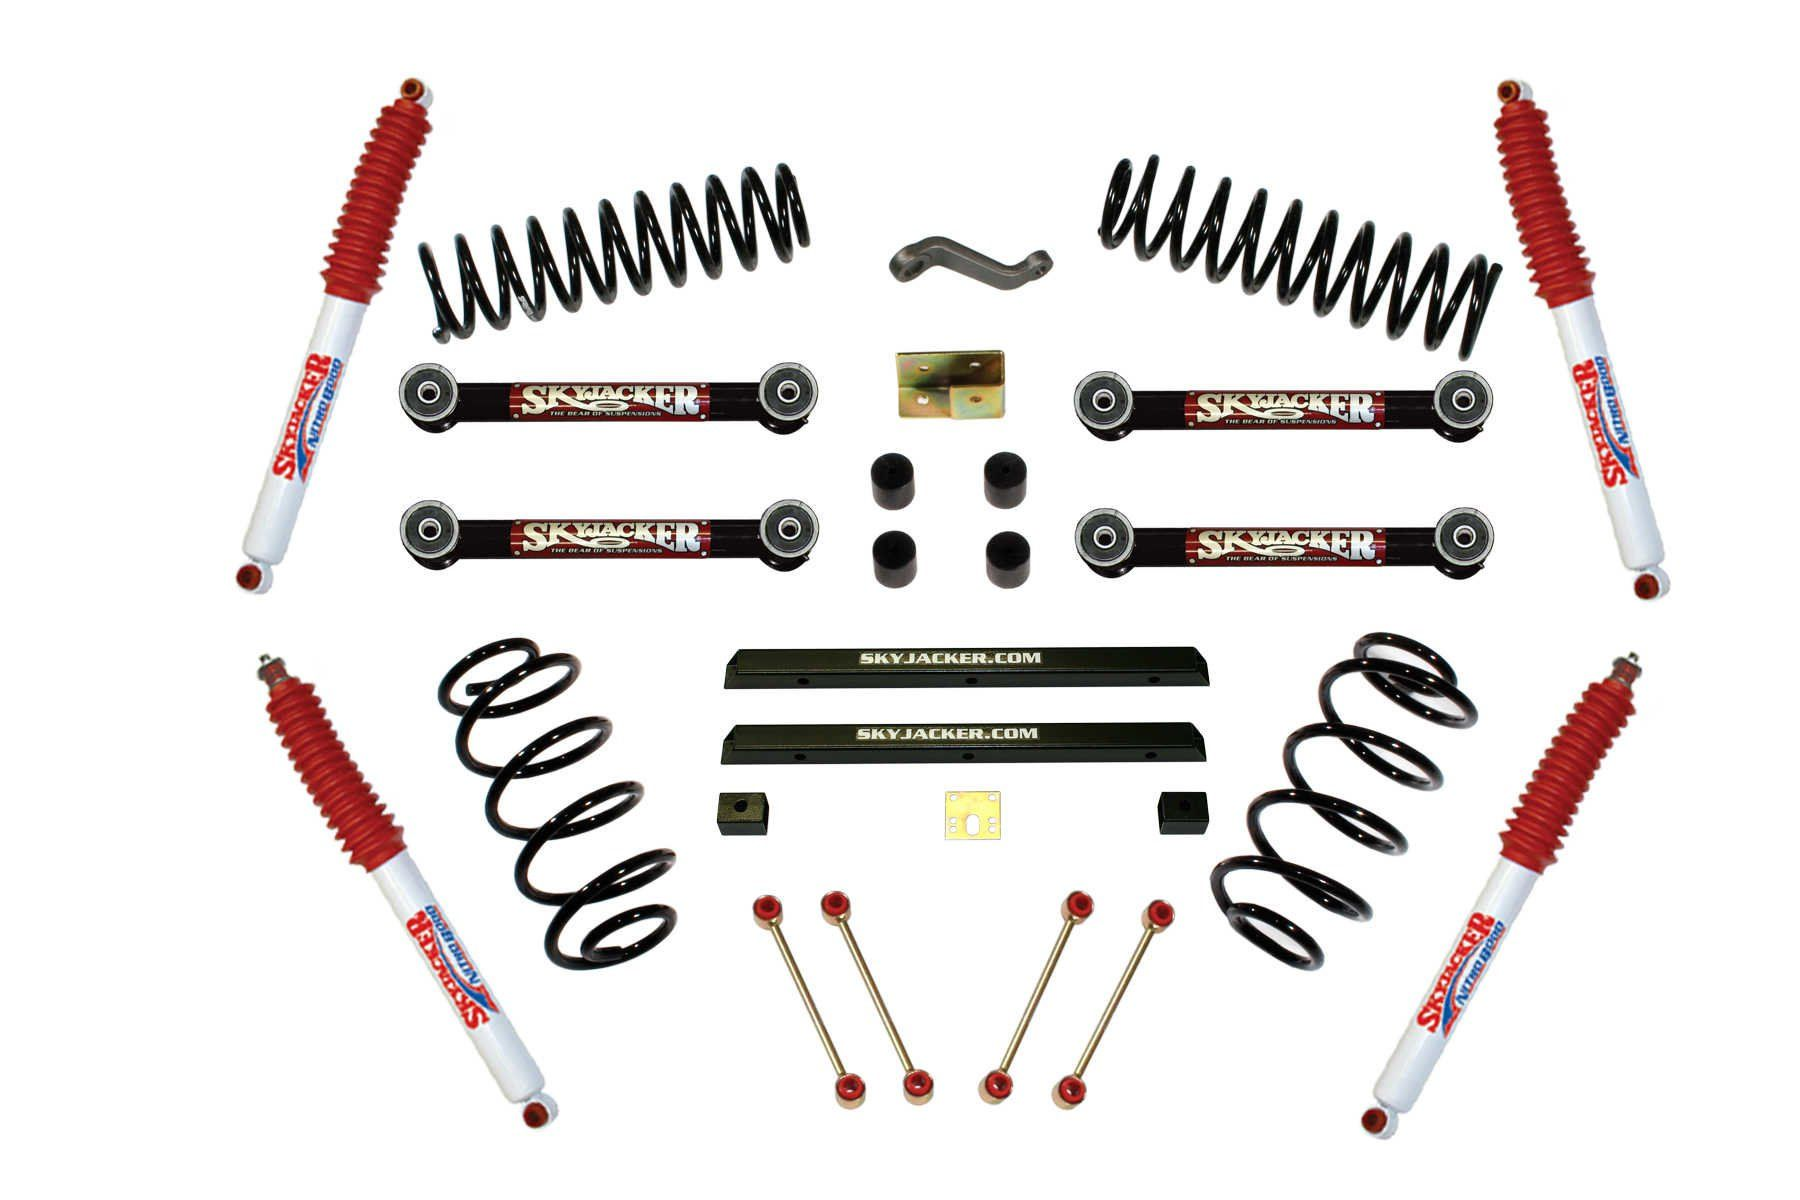 Skyjacker 4 inch Economy Lift Kit for 9706 Wrangler TJ